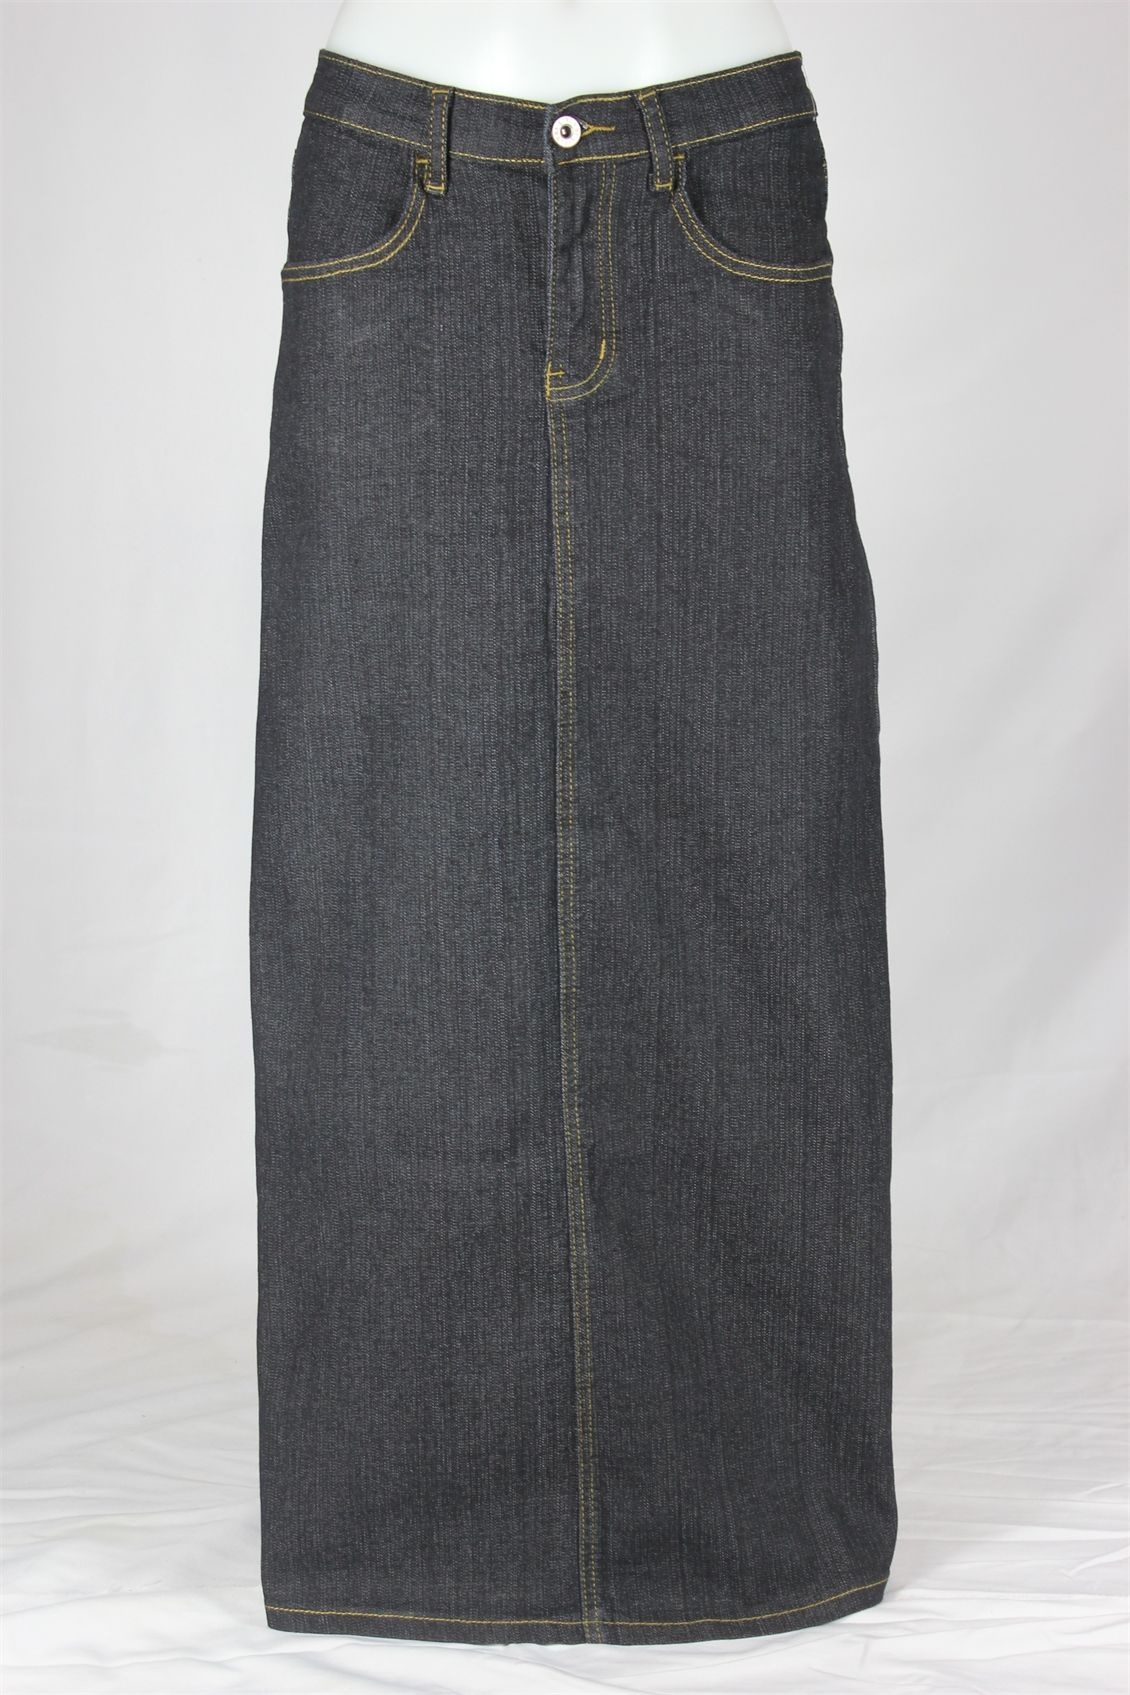 Flowing Grace Modest Skirt | Long Denim Skirt Sizes 6-18 | Long ...